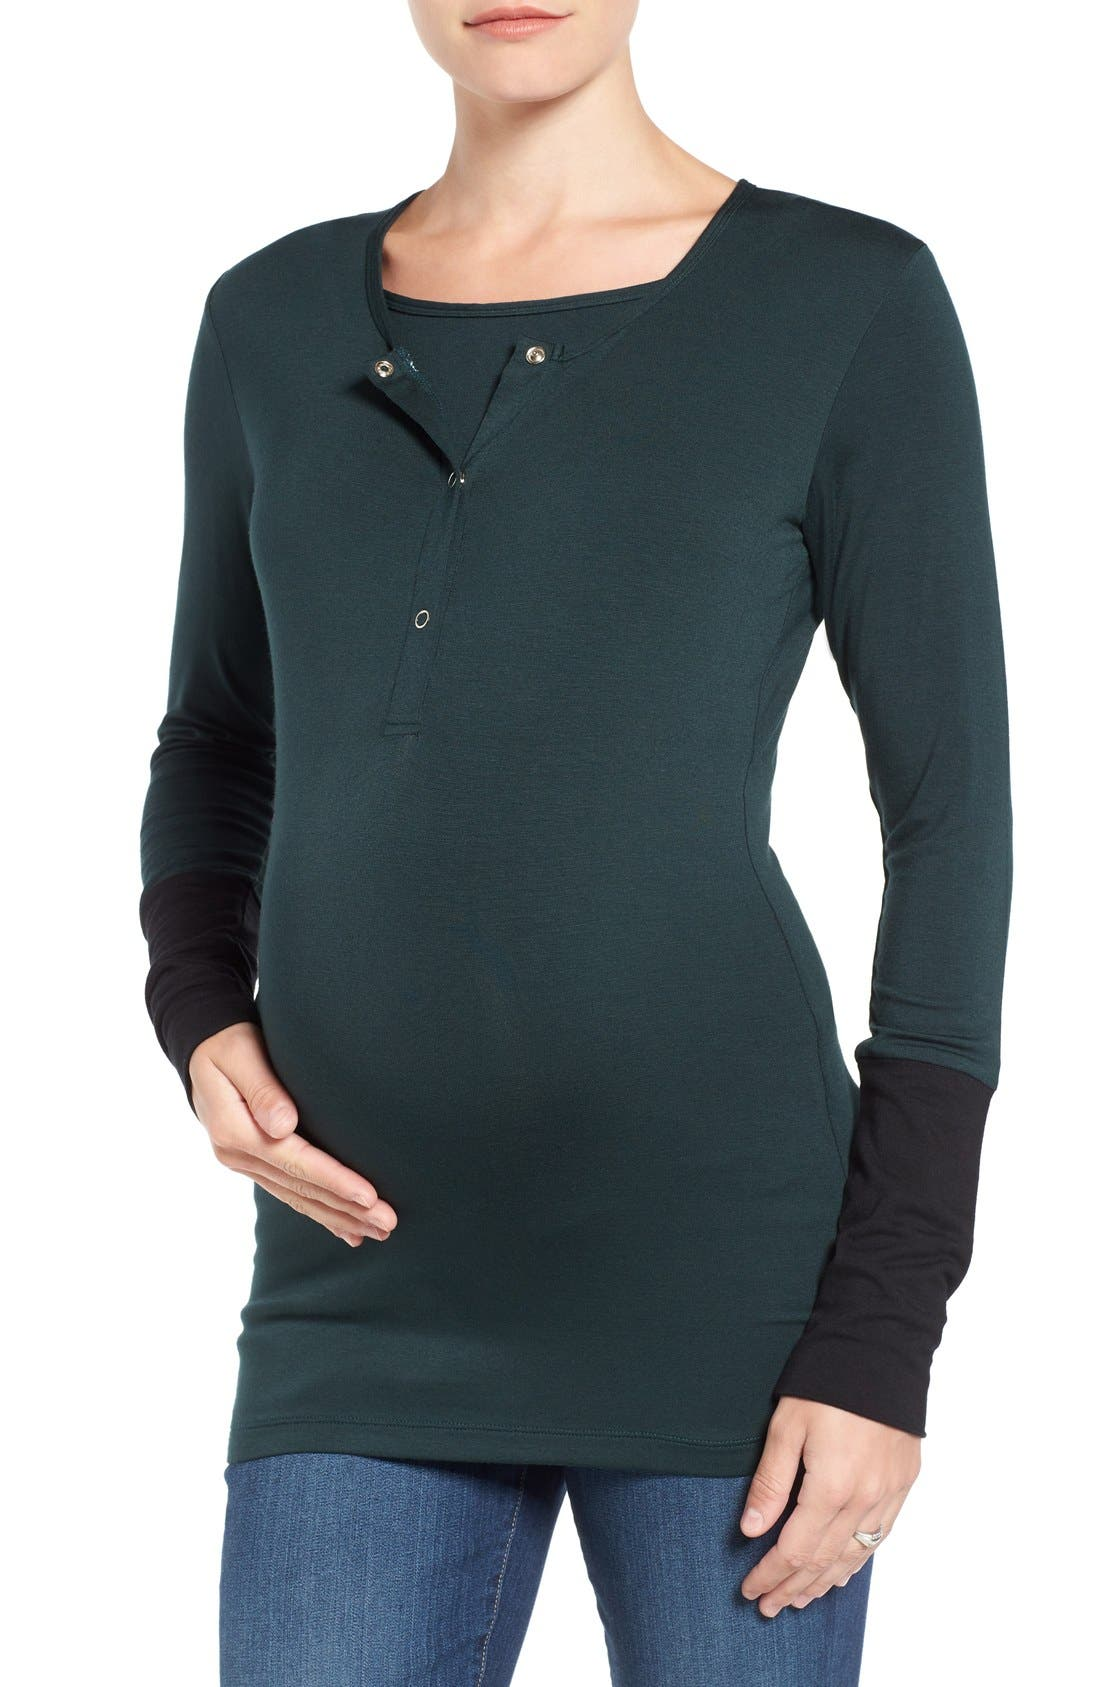 'Jenn' Maternity/Nursing Top,                         Main,                         color, HUNTER W/ BLACK CUFF